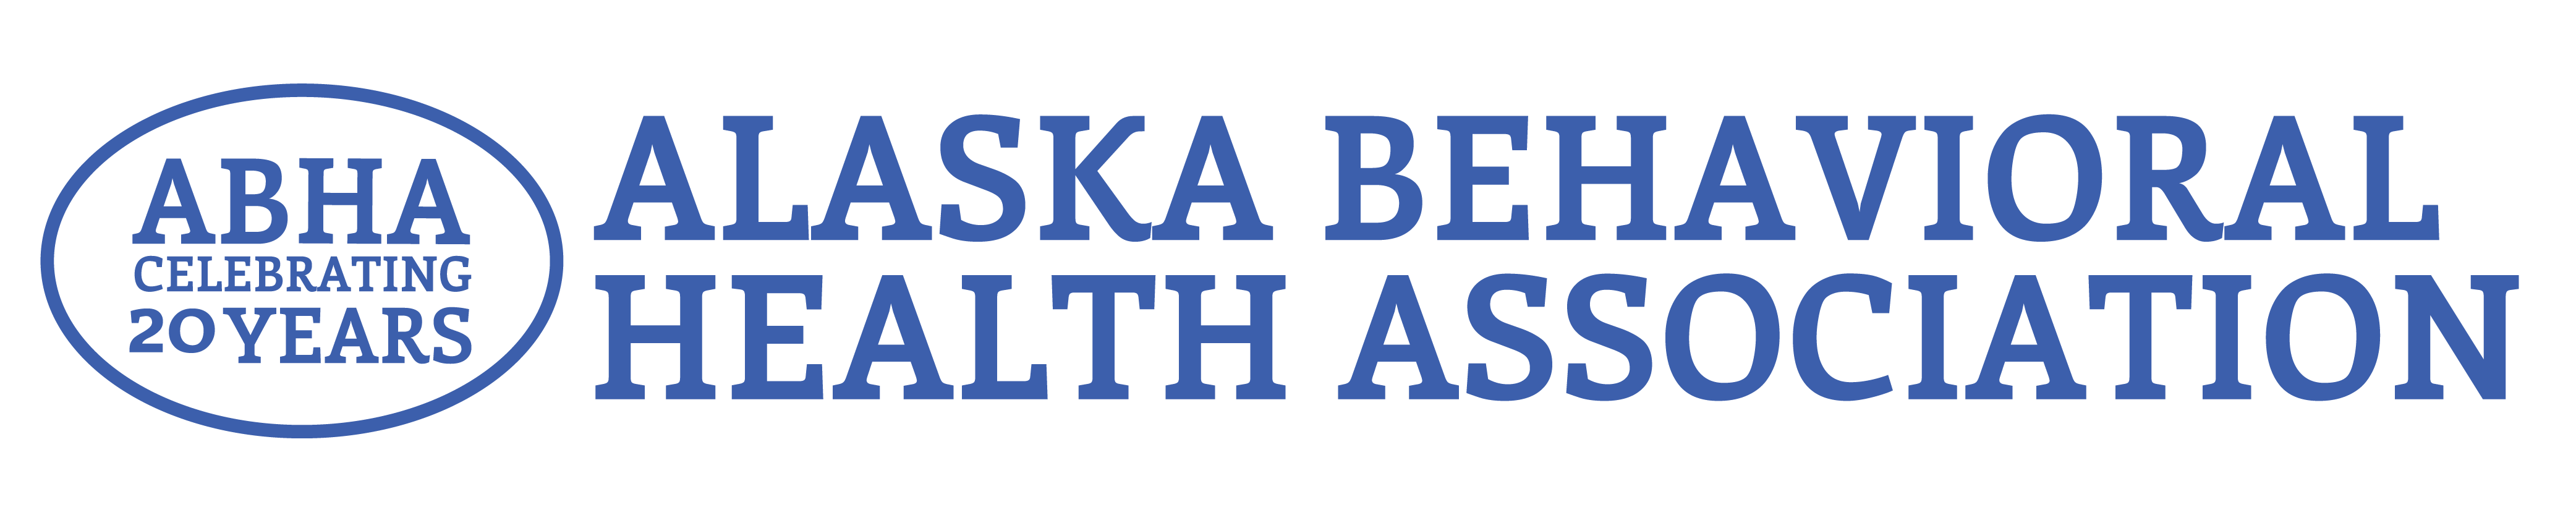 Alaska Behavioral Health Association